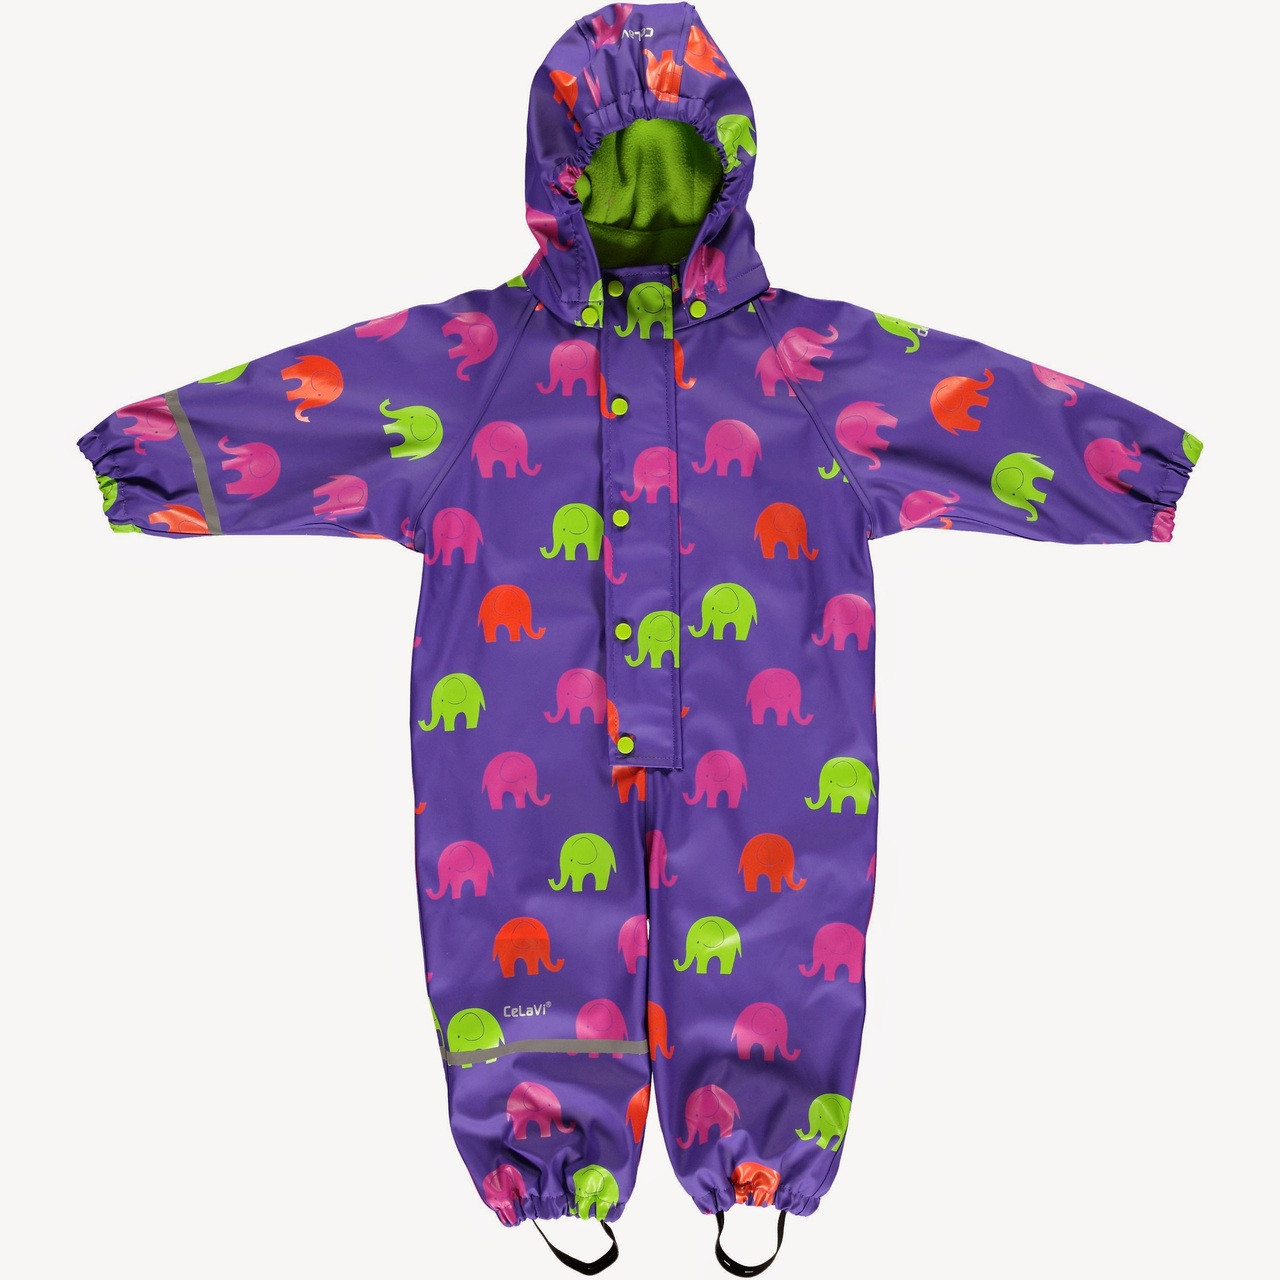 5a7153bbc Fleece Lined All in One Suit - Raindrops